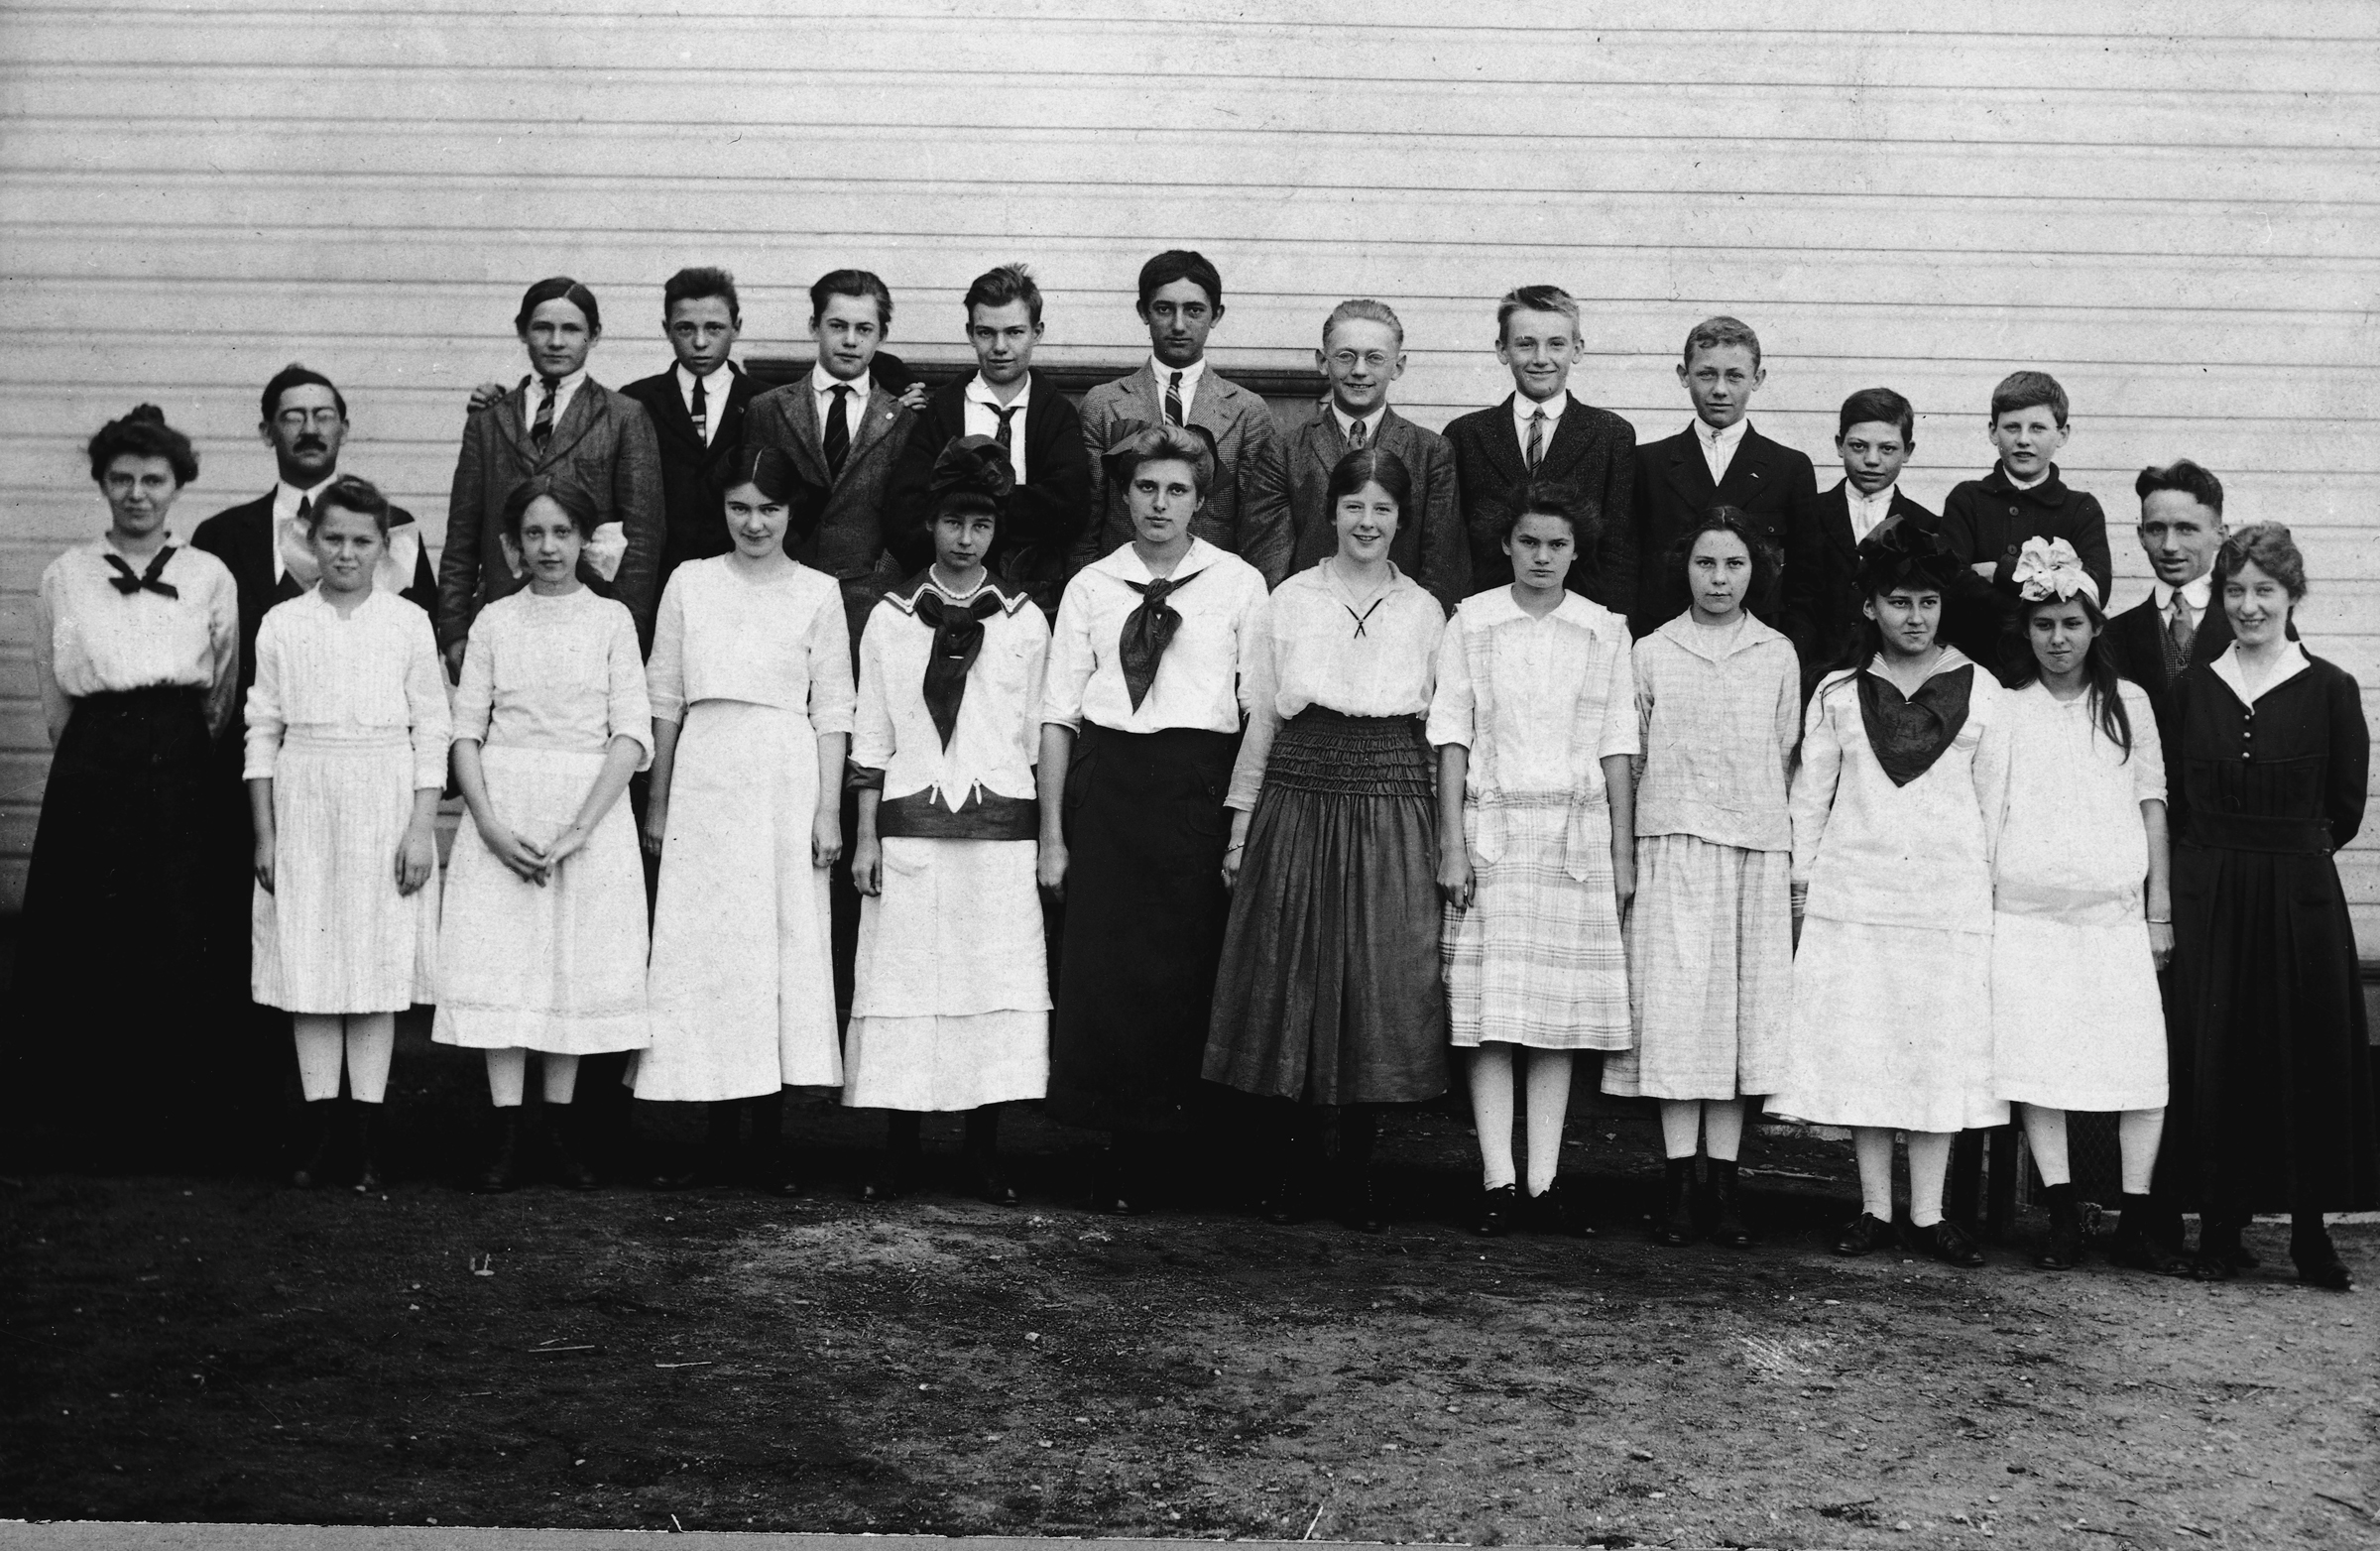 MTLSD High School Old Class Photo